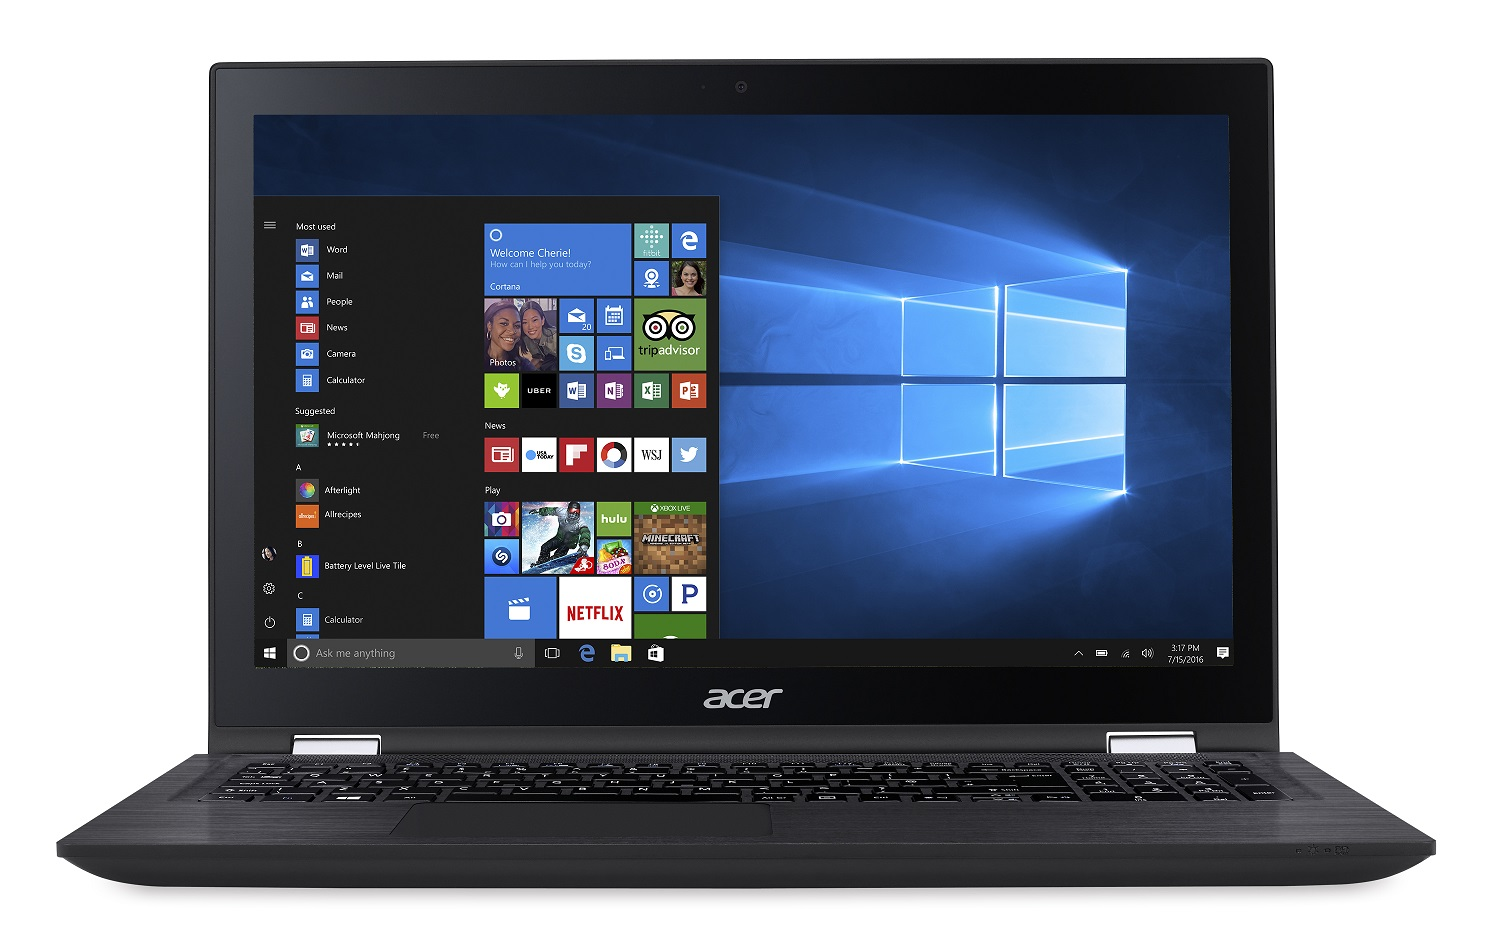 """Acer Spin 3 (SP315-51-38T2 i3-6100U/4GB+N/256GB SSD M.2+N/HD Graphics/15.6"""" FHD Multi-Touch/BT/W10 Home/Black"""